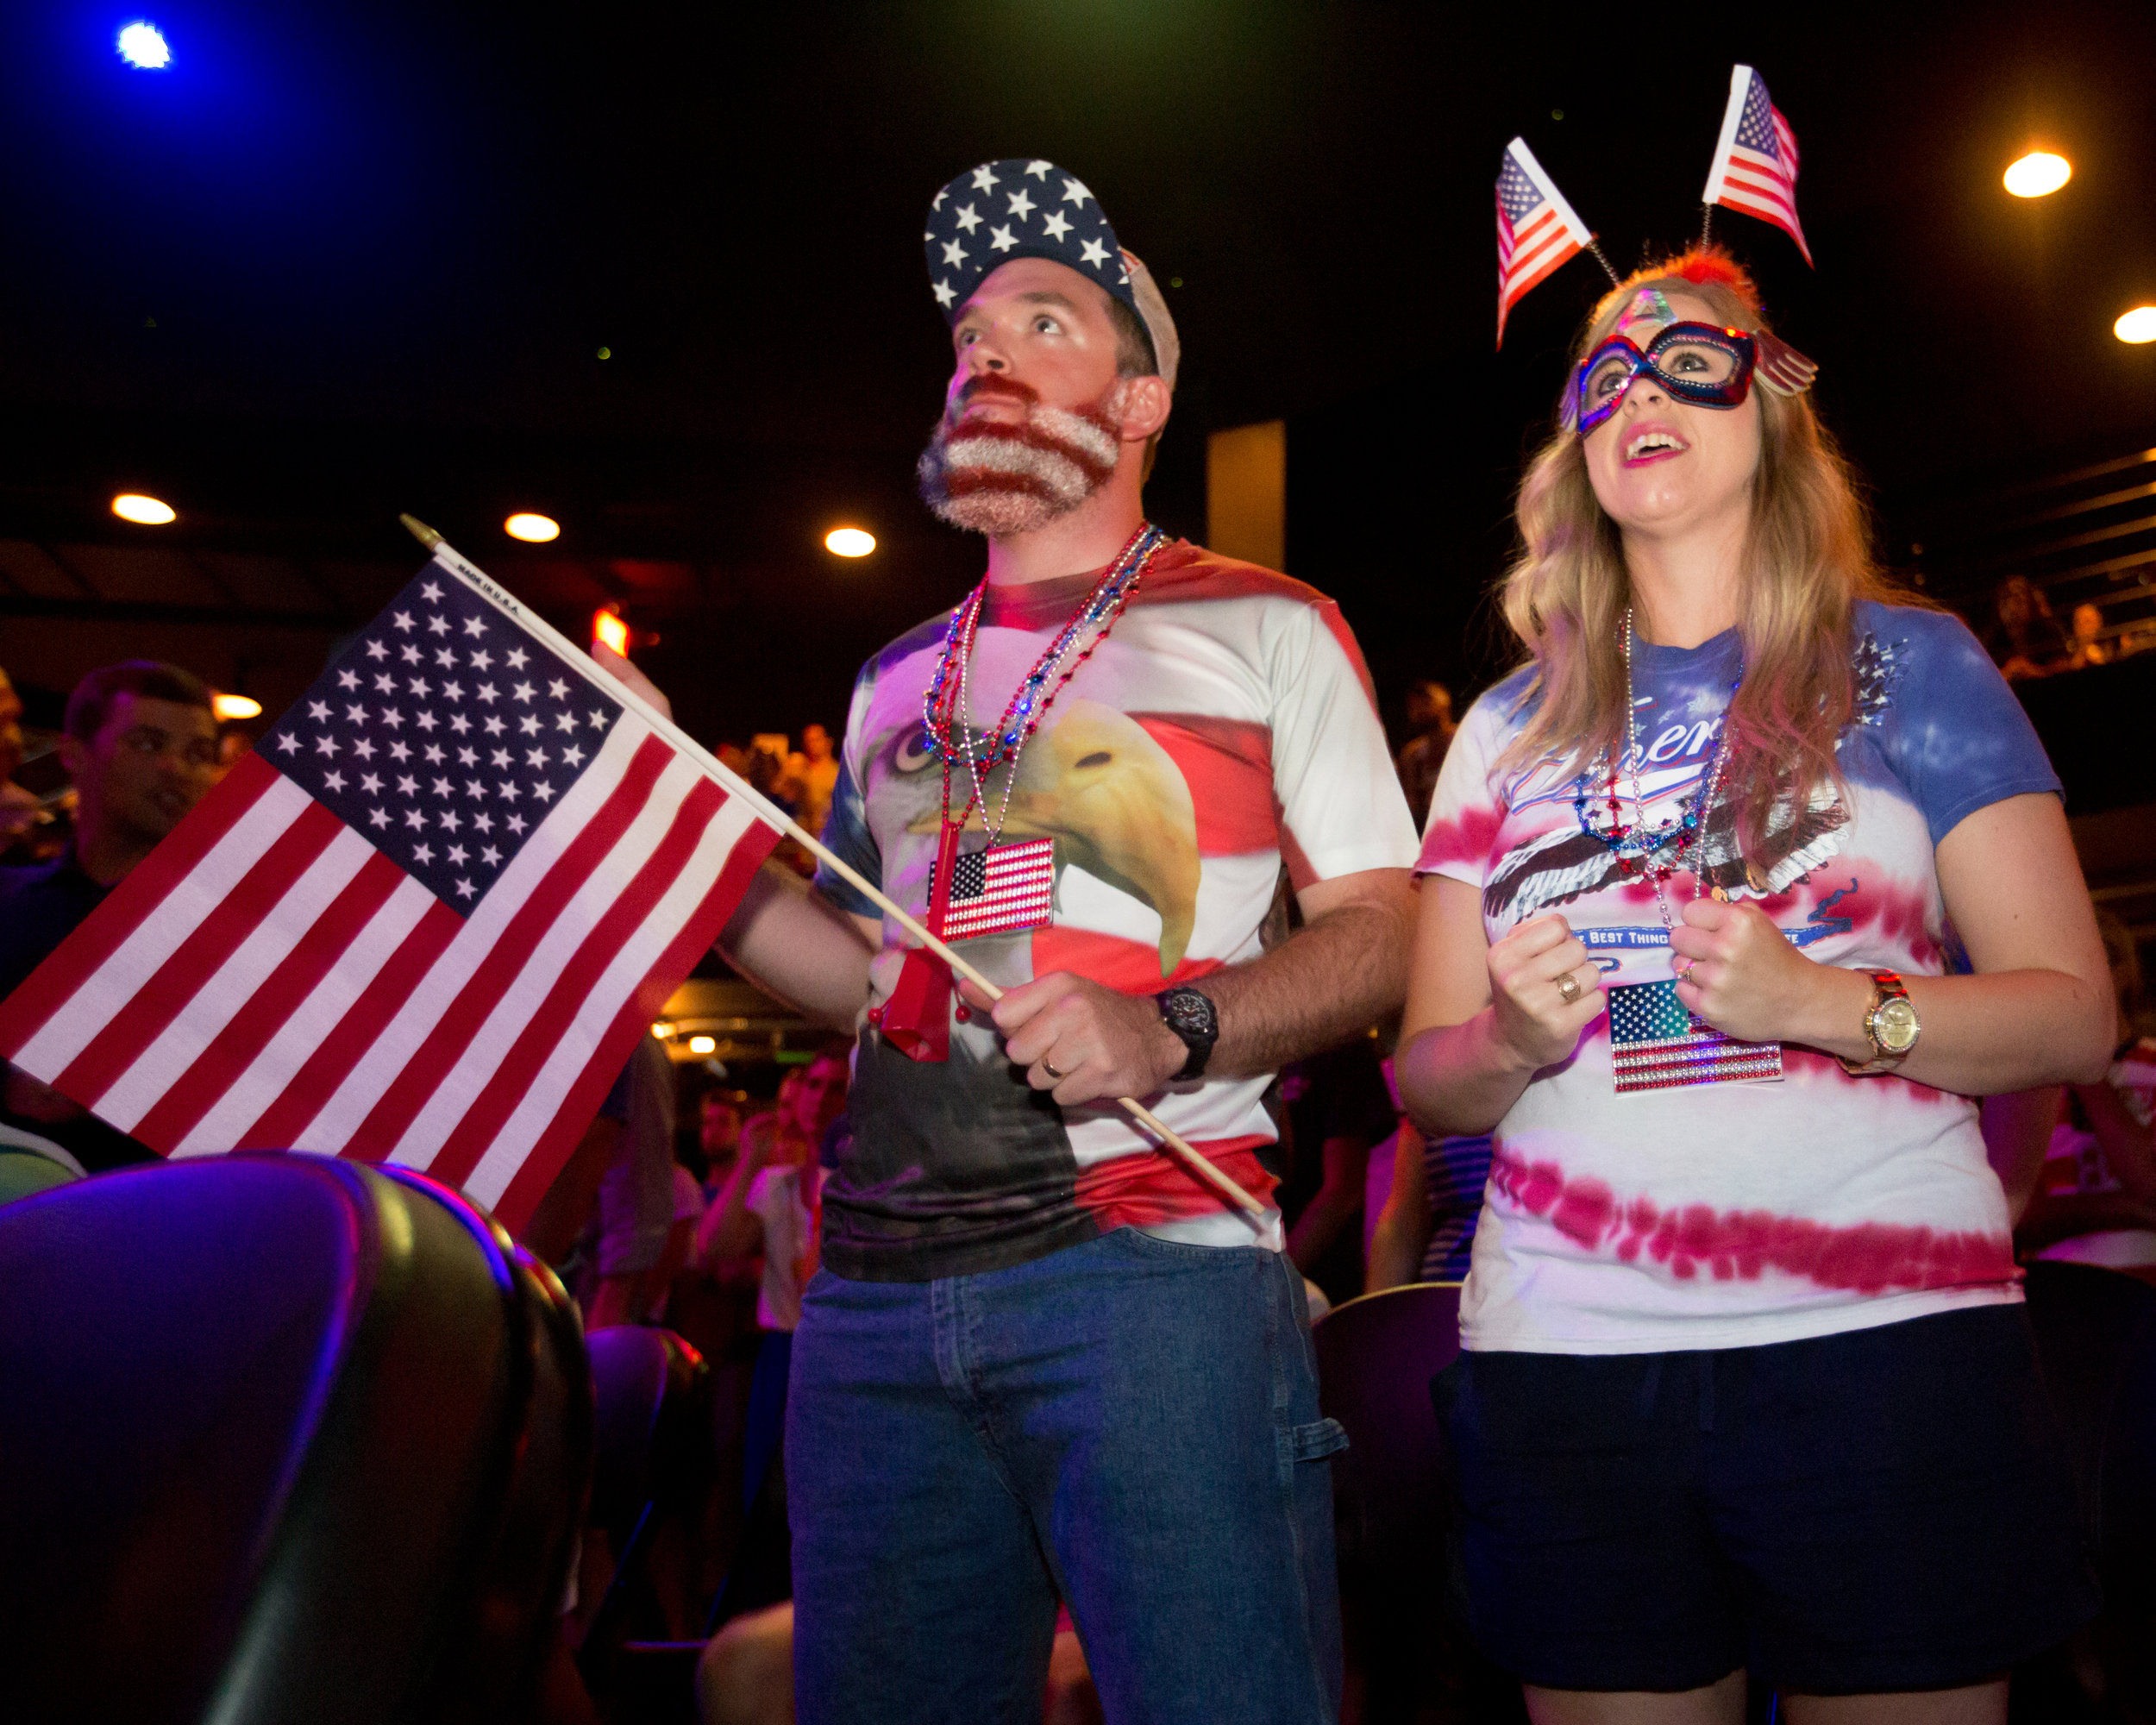 Two US Soccer fans watch the 2014 World Cup in Austin, TX